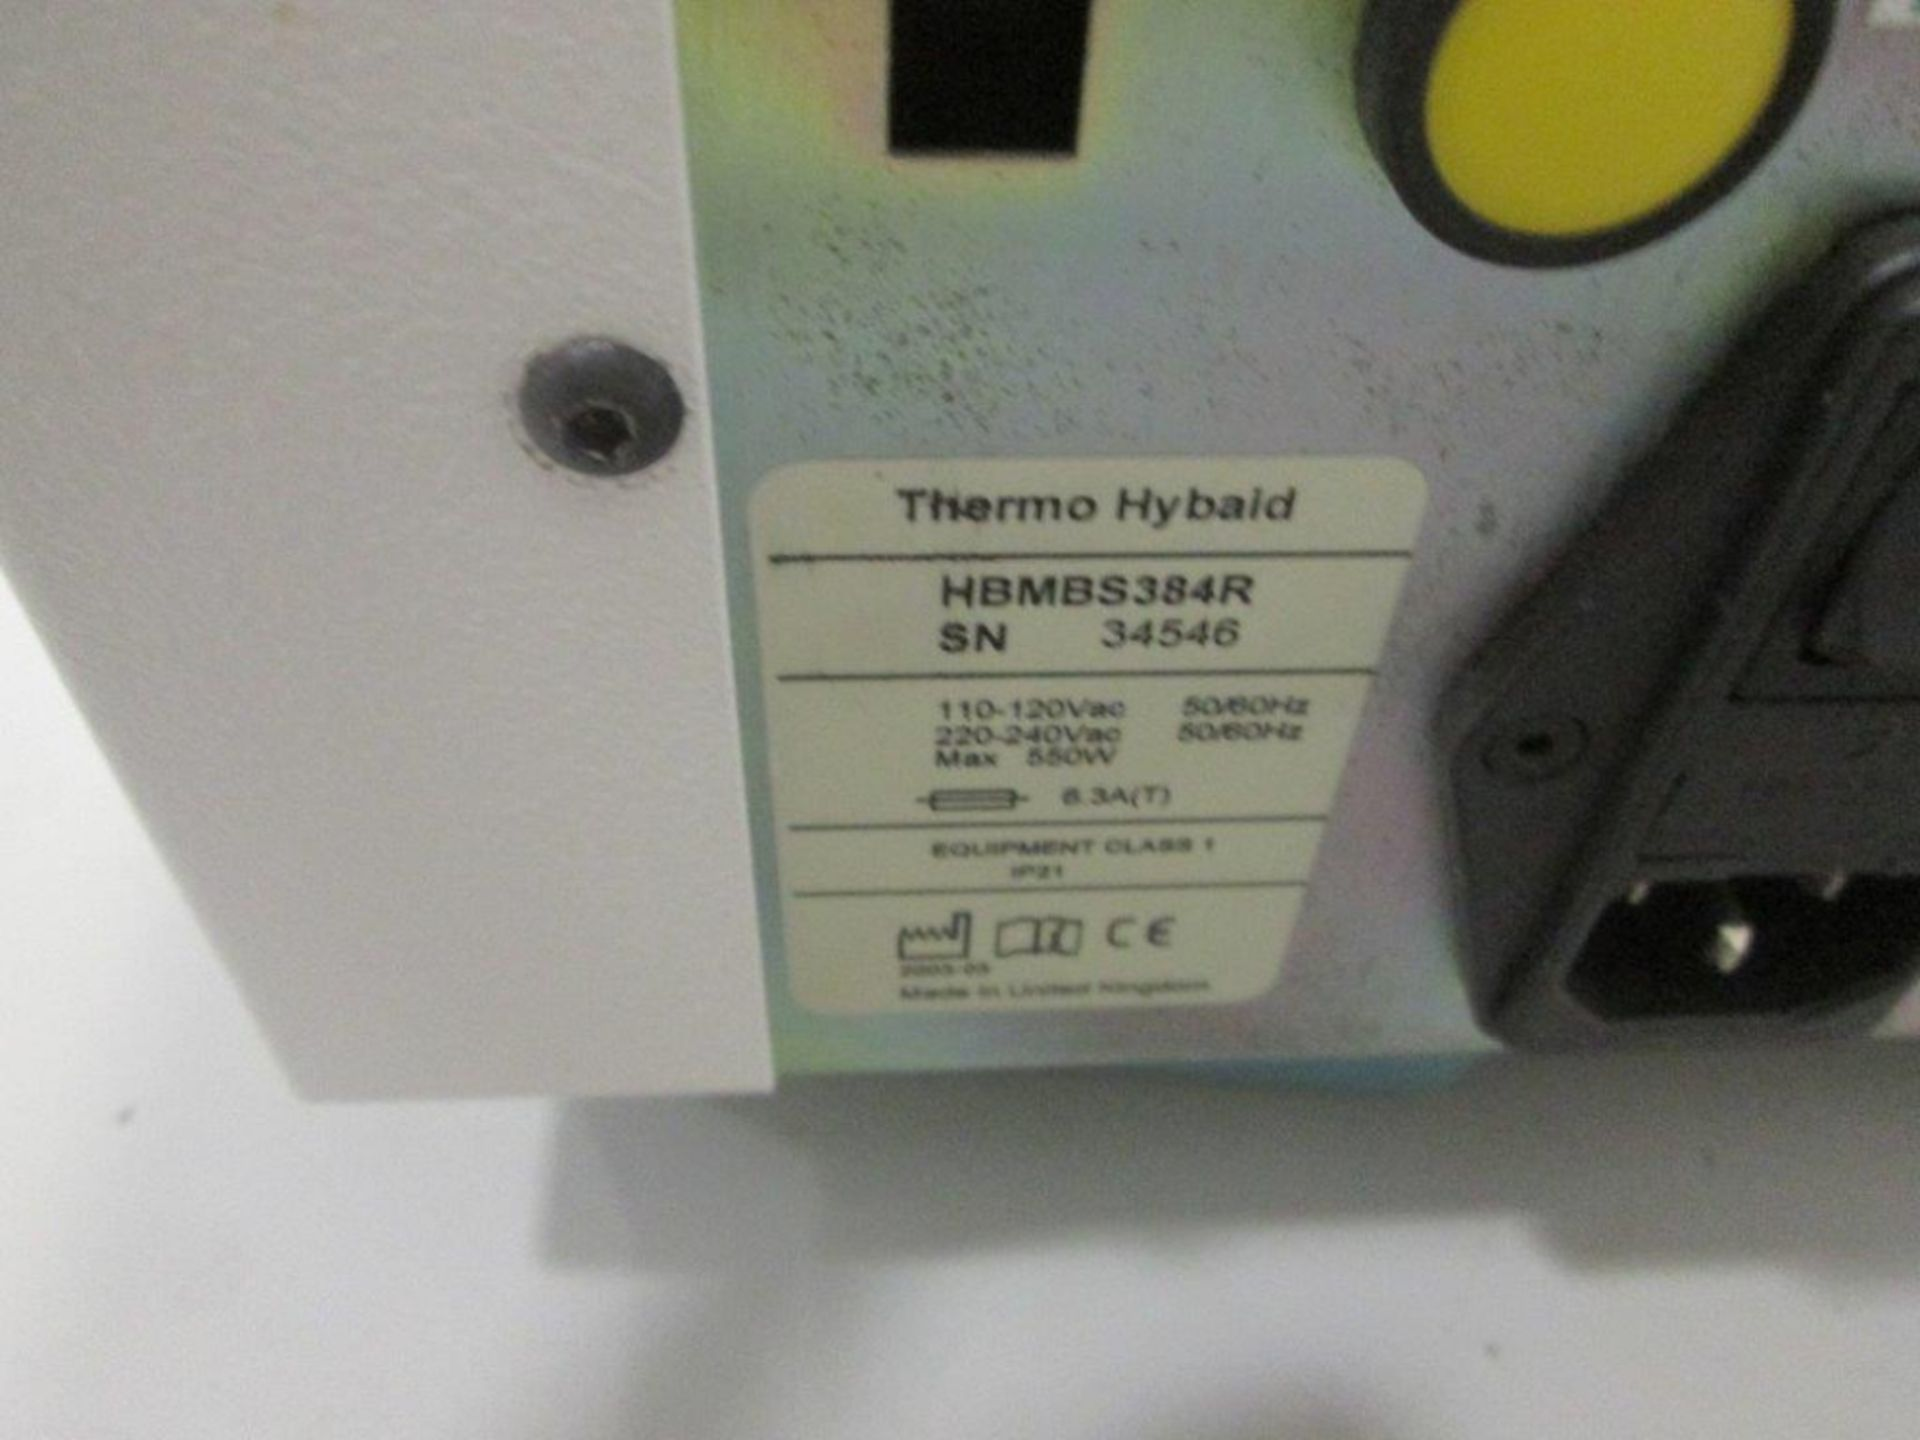 Lot of (3) Thermo Electron Corp MBSr Robot Compatible Expandable PCR - Image 2 of 4